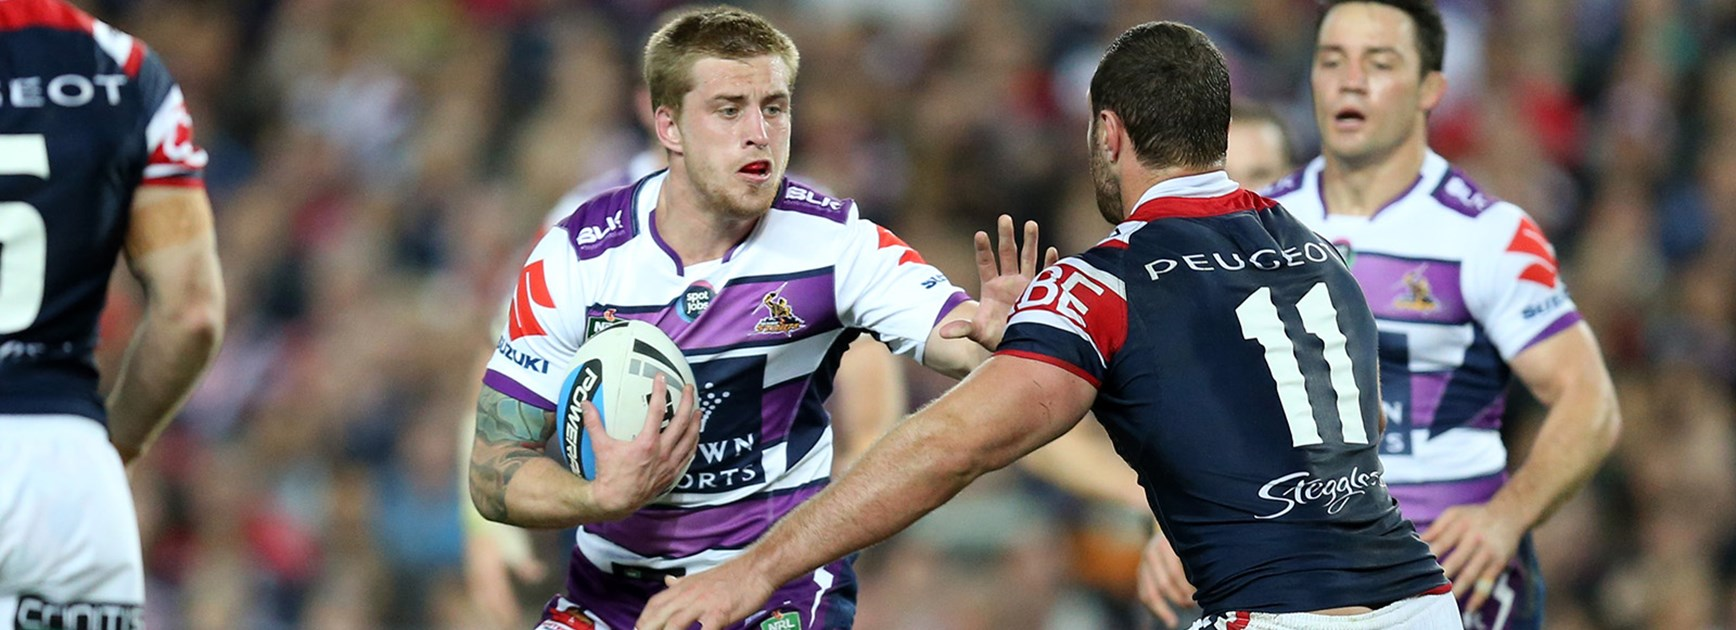 Cameron Munster was rock solid against the Roosters in their Qualifying Final at Allianz Stadium.